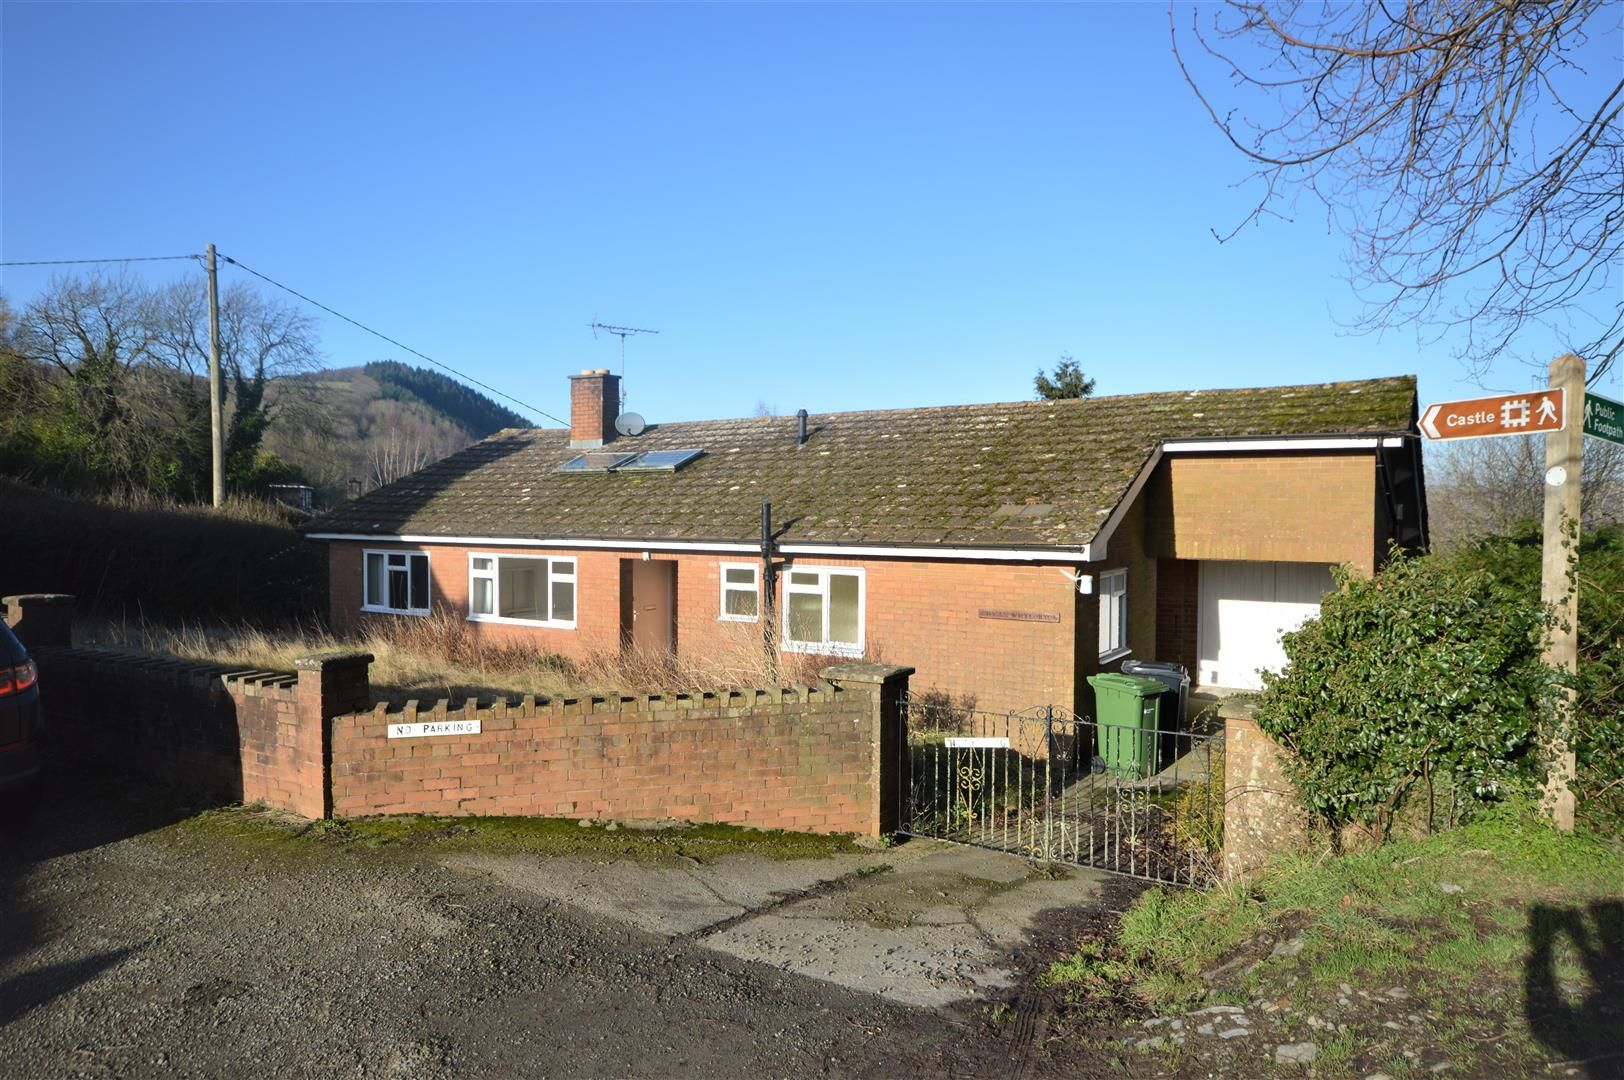 3 bed detached-bungalow for sale in Wigmore, HR6